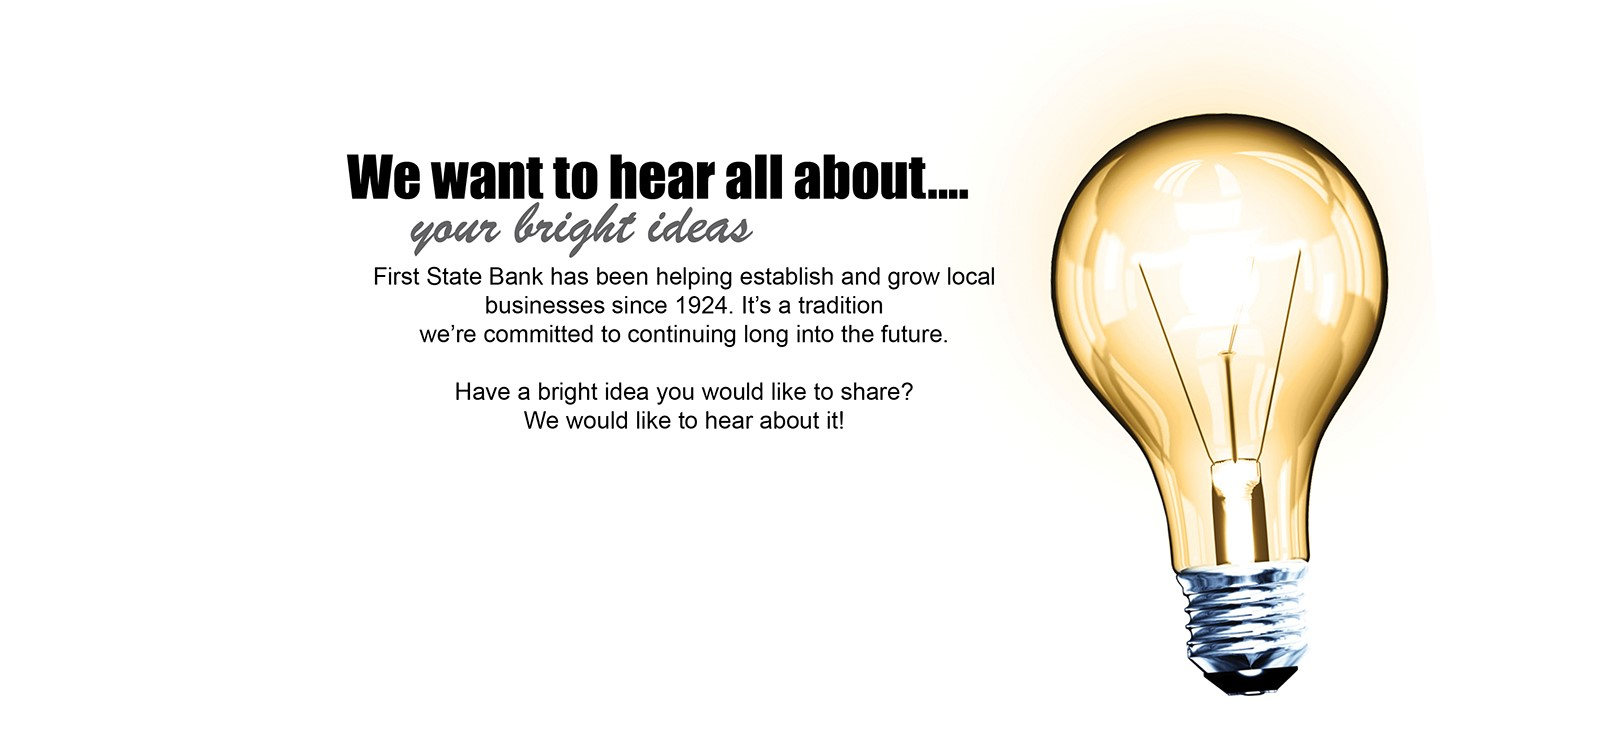 We want to hear about all your bright ideas. First State Bank has been helping establish and grow local businesses since 1924